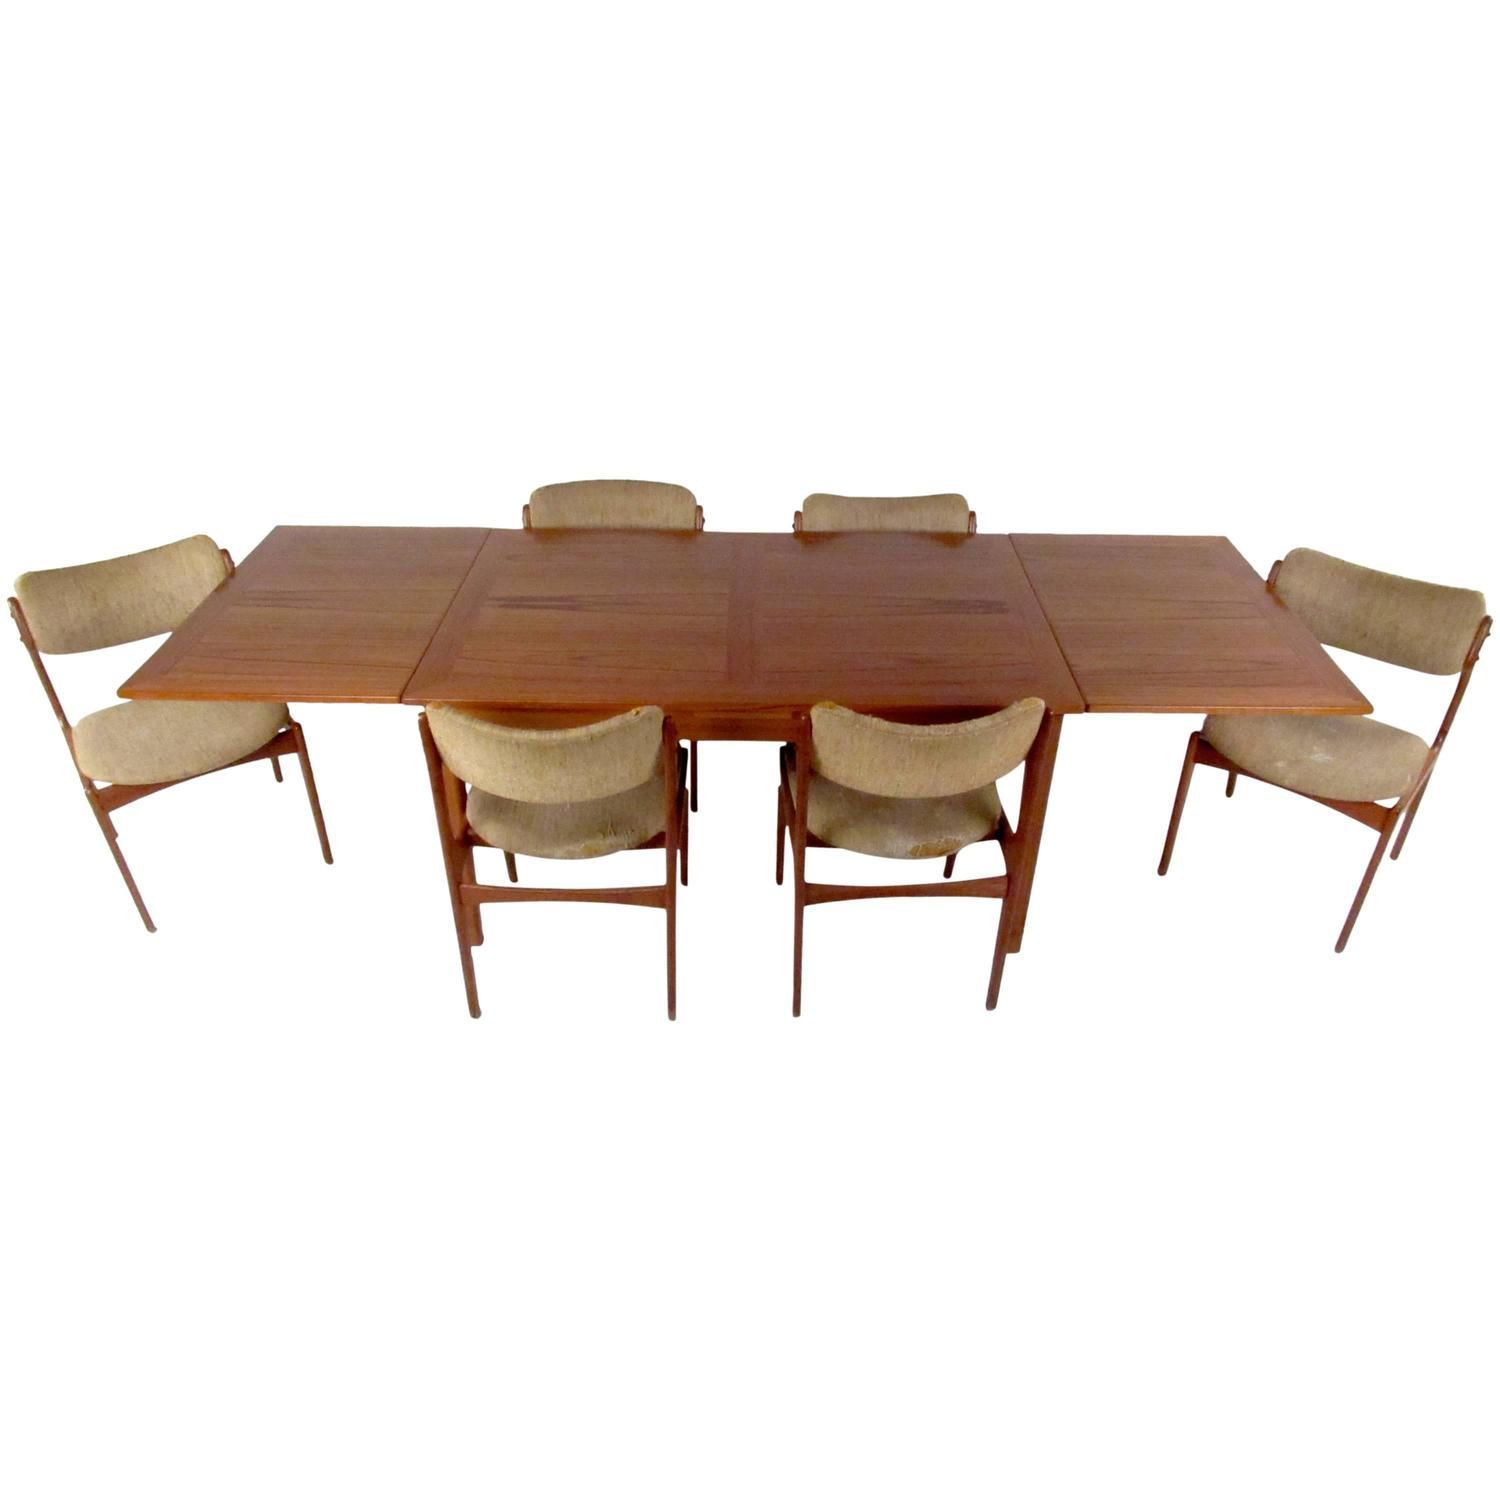 O D M¸bler Denmark Furniture 13 For Sale at 1stdibs